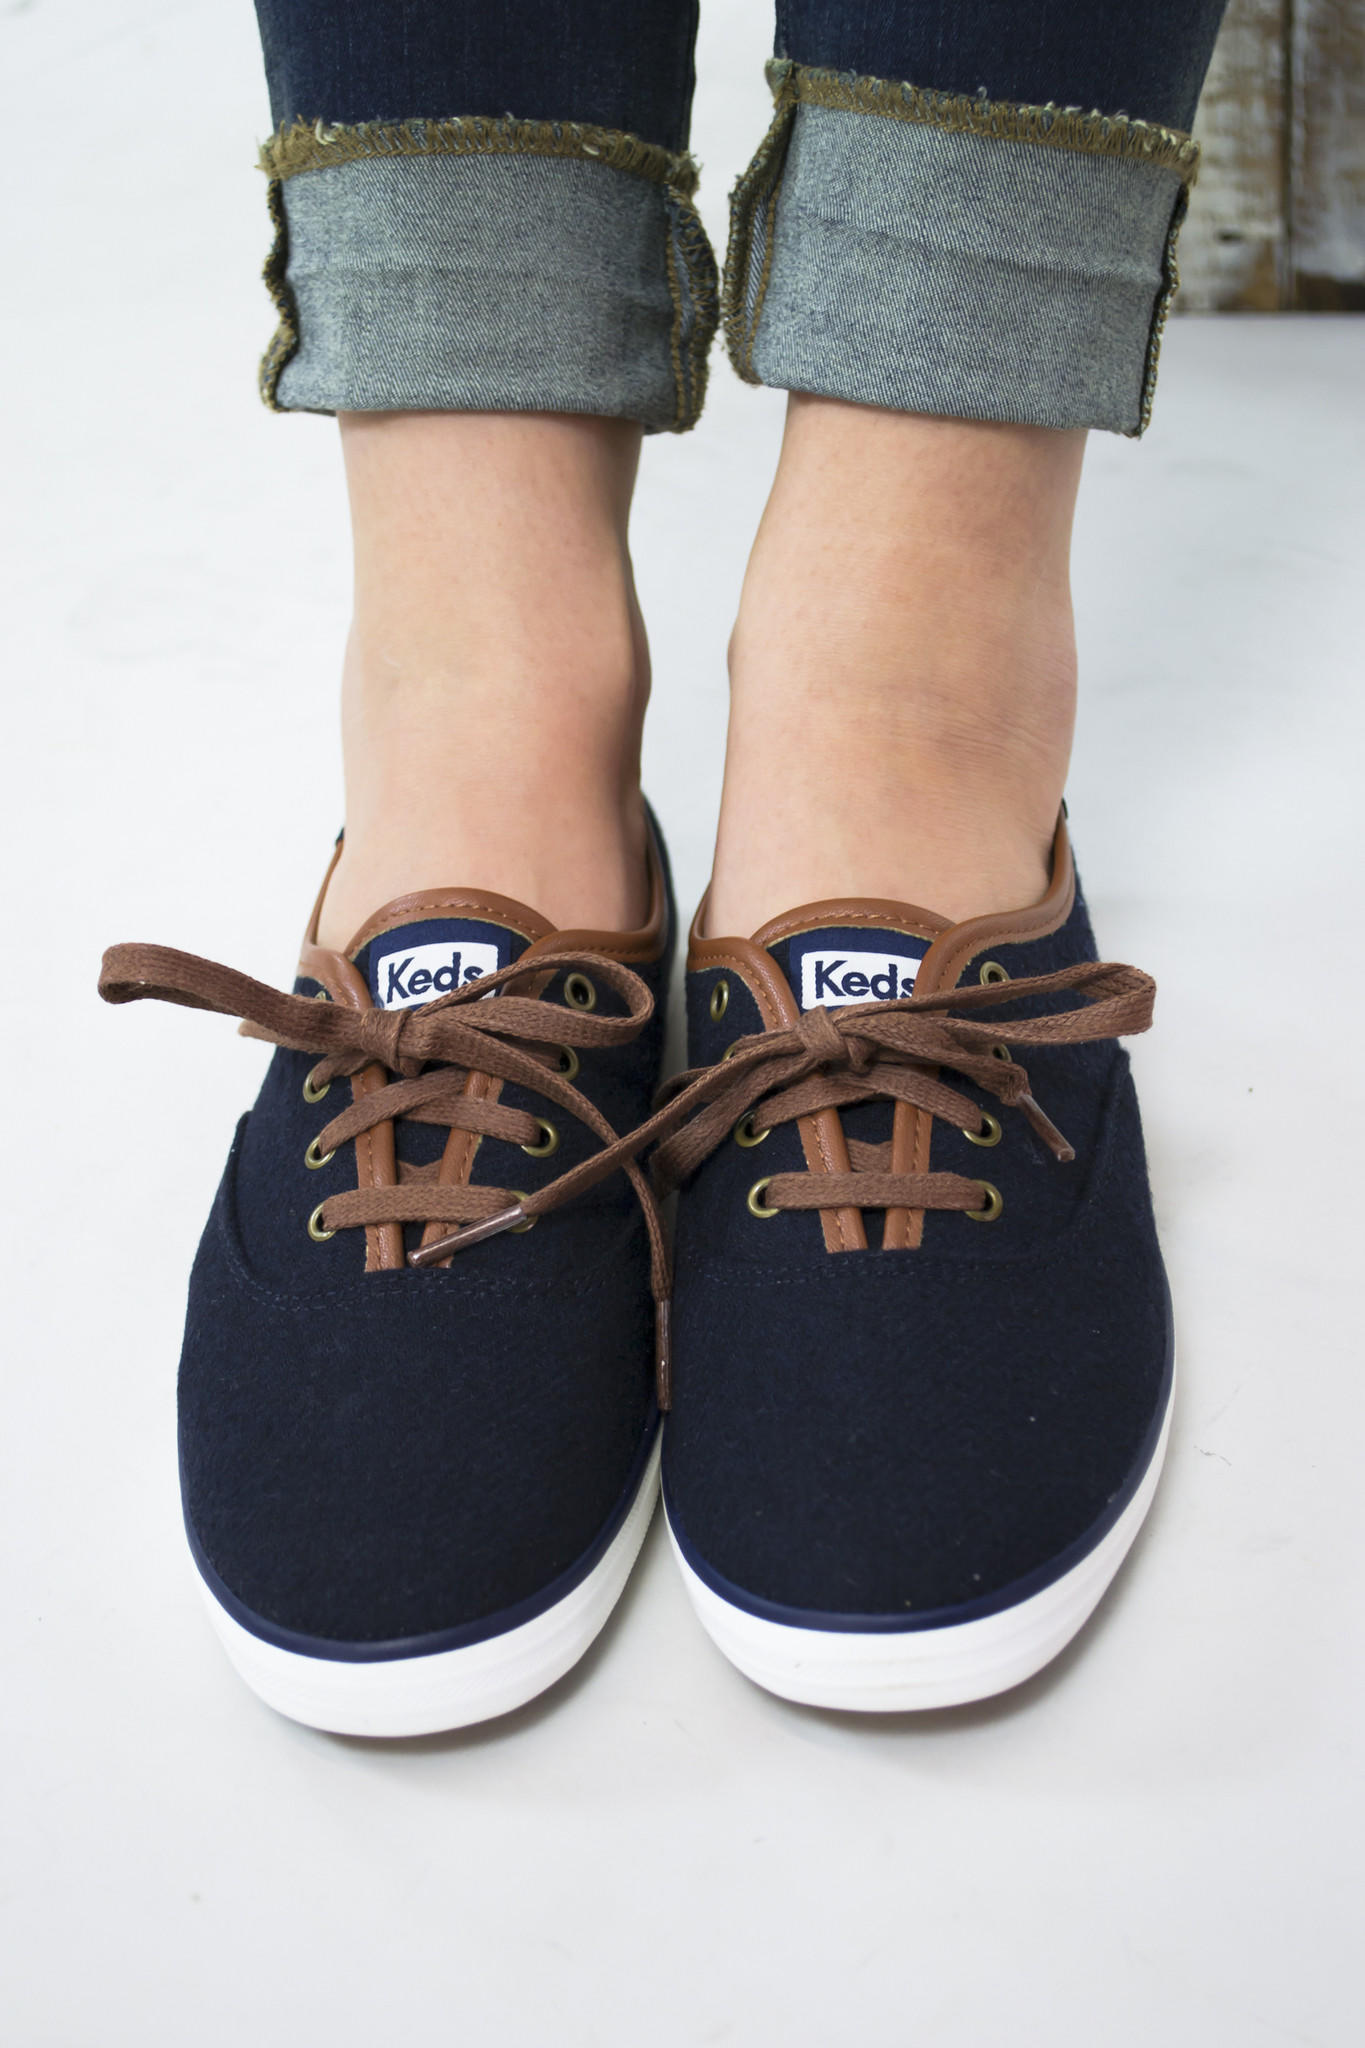 ca9dfdd863eb4 Champion Wool Lace Up Keds from Siloe Boutique